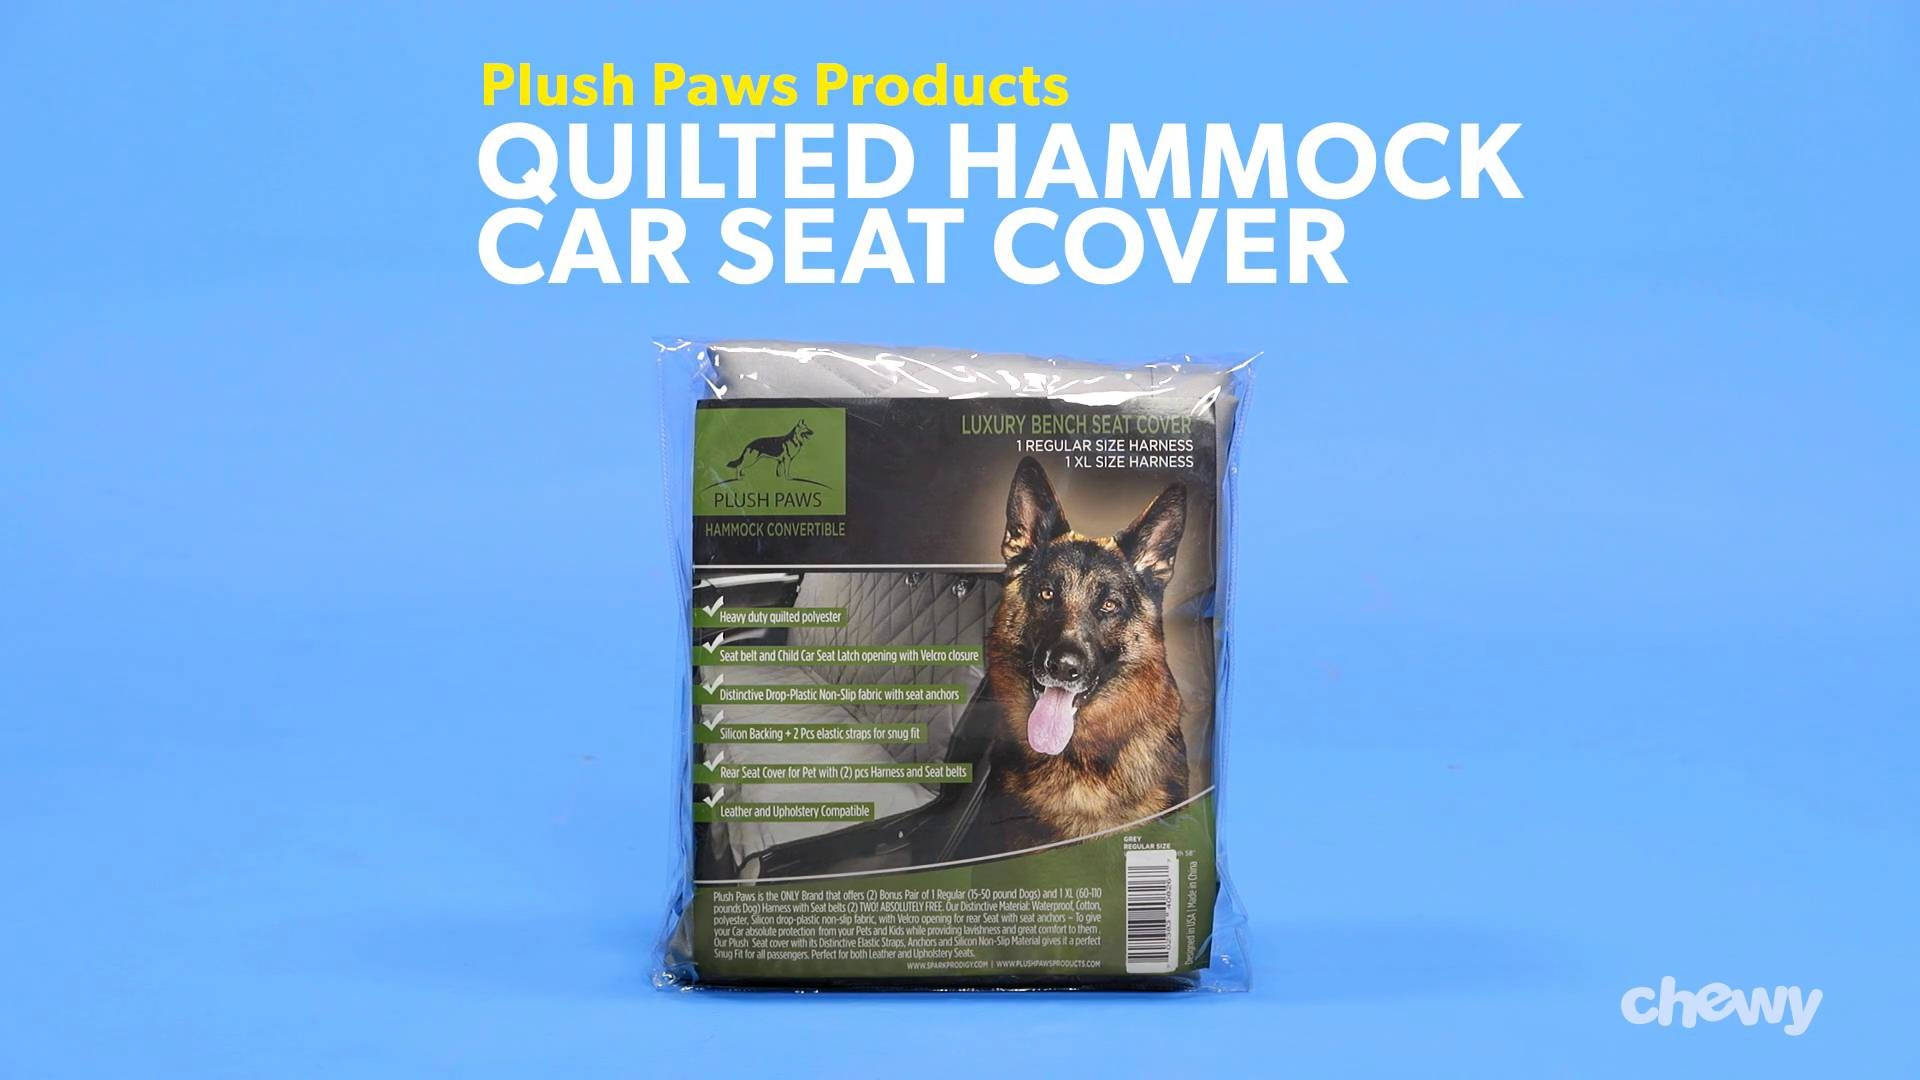 Plush Paws Products Quilted Hammock Car Seat Cover Black Regular Chewy